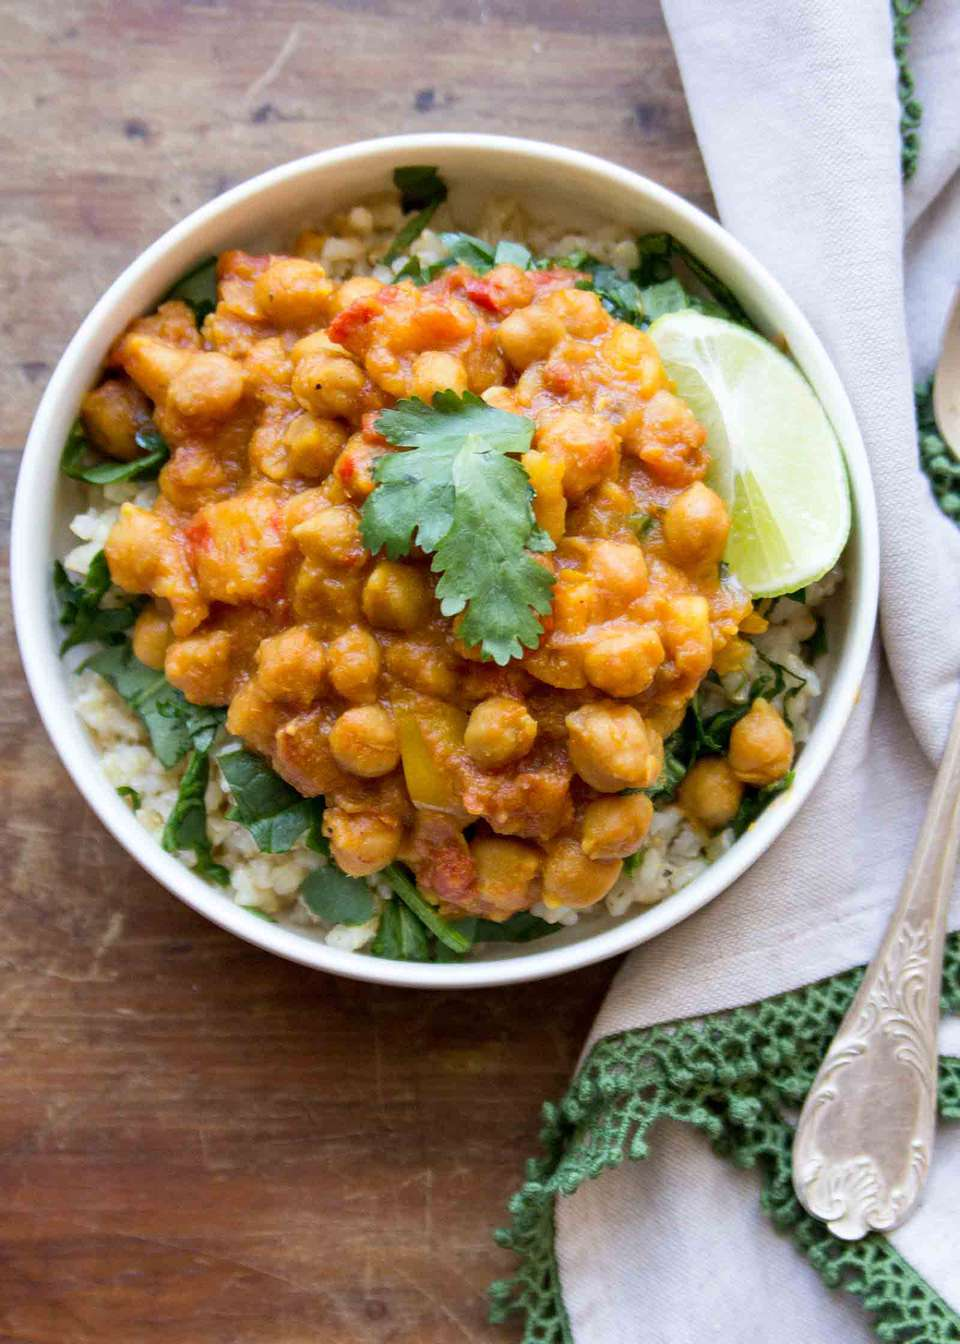 Crockpot Chickpea Curry served in a bowl with fresh spinach, rice, and a wedge of lime.